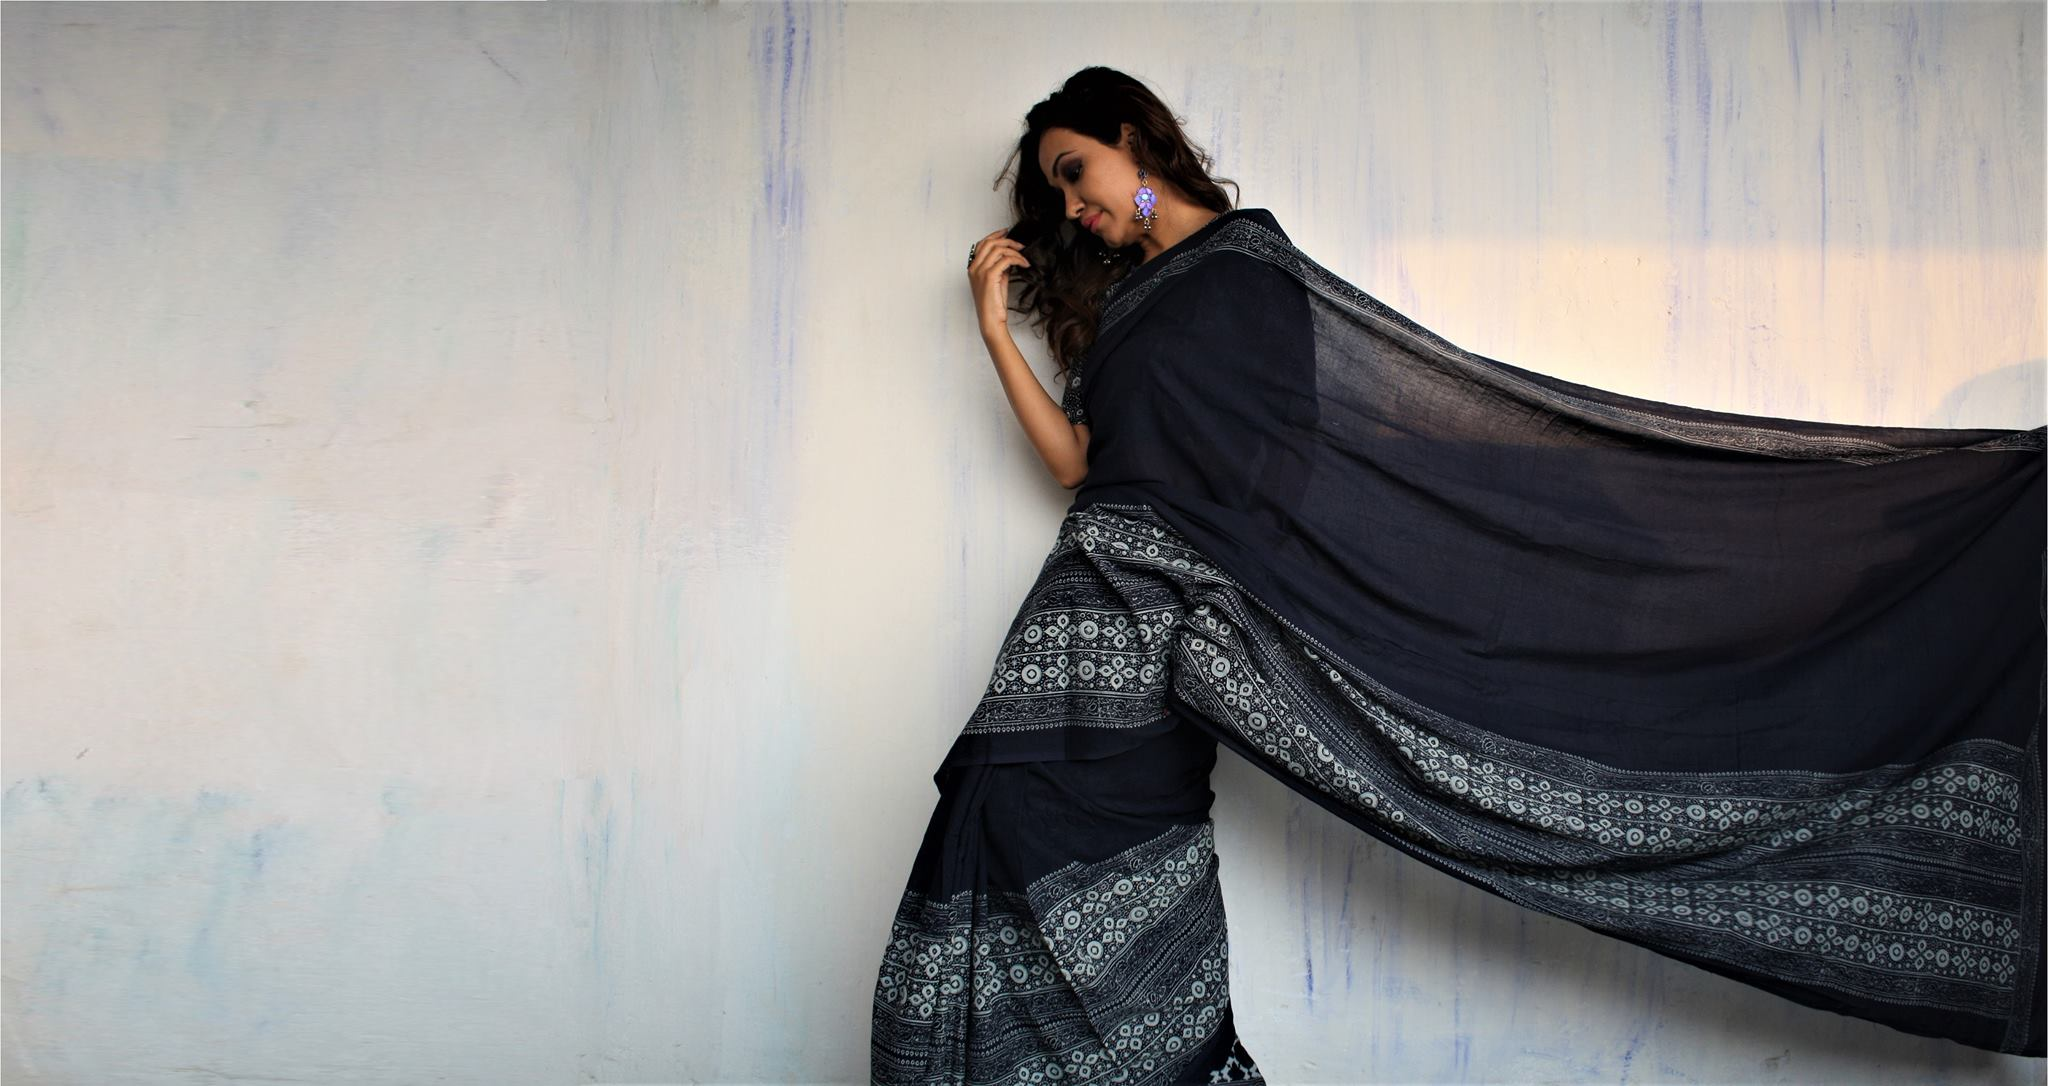 5 Traditional Saree-Draping Styles From India